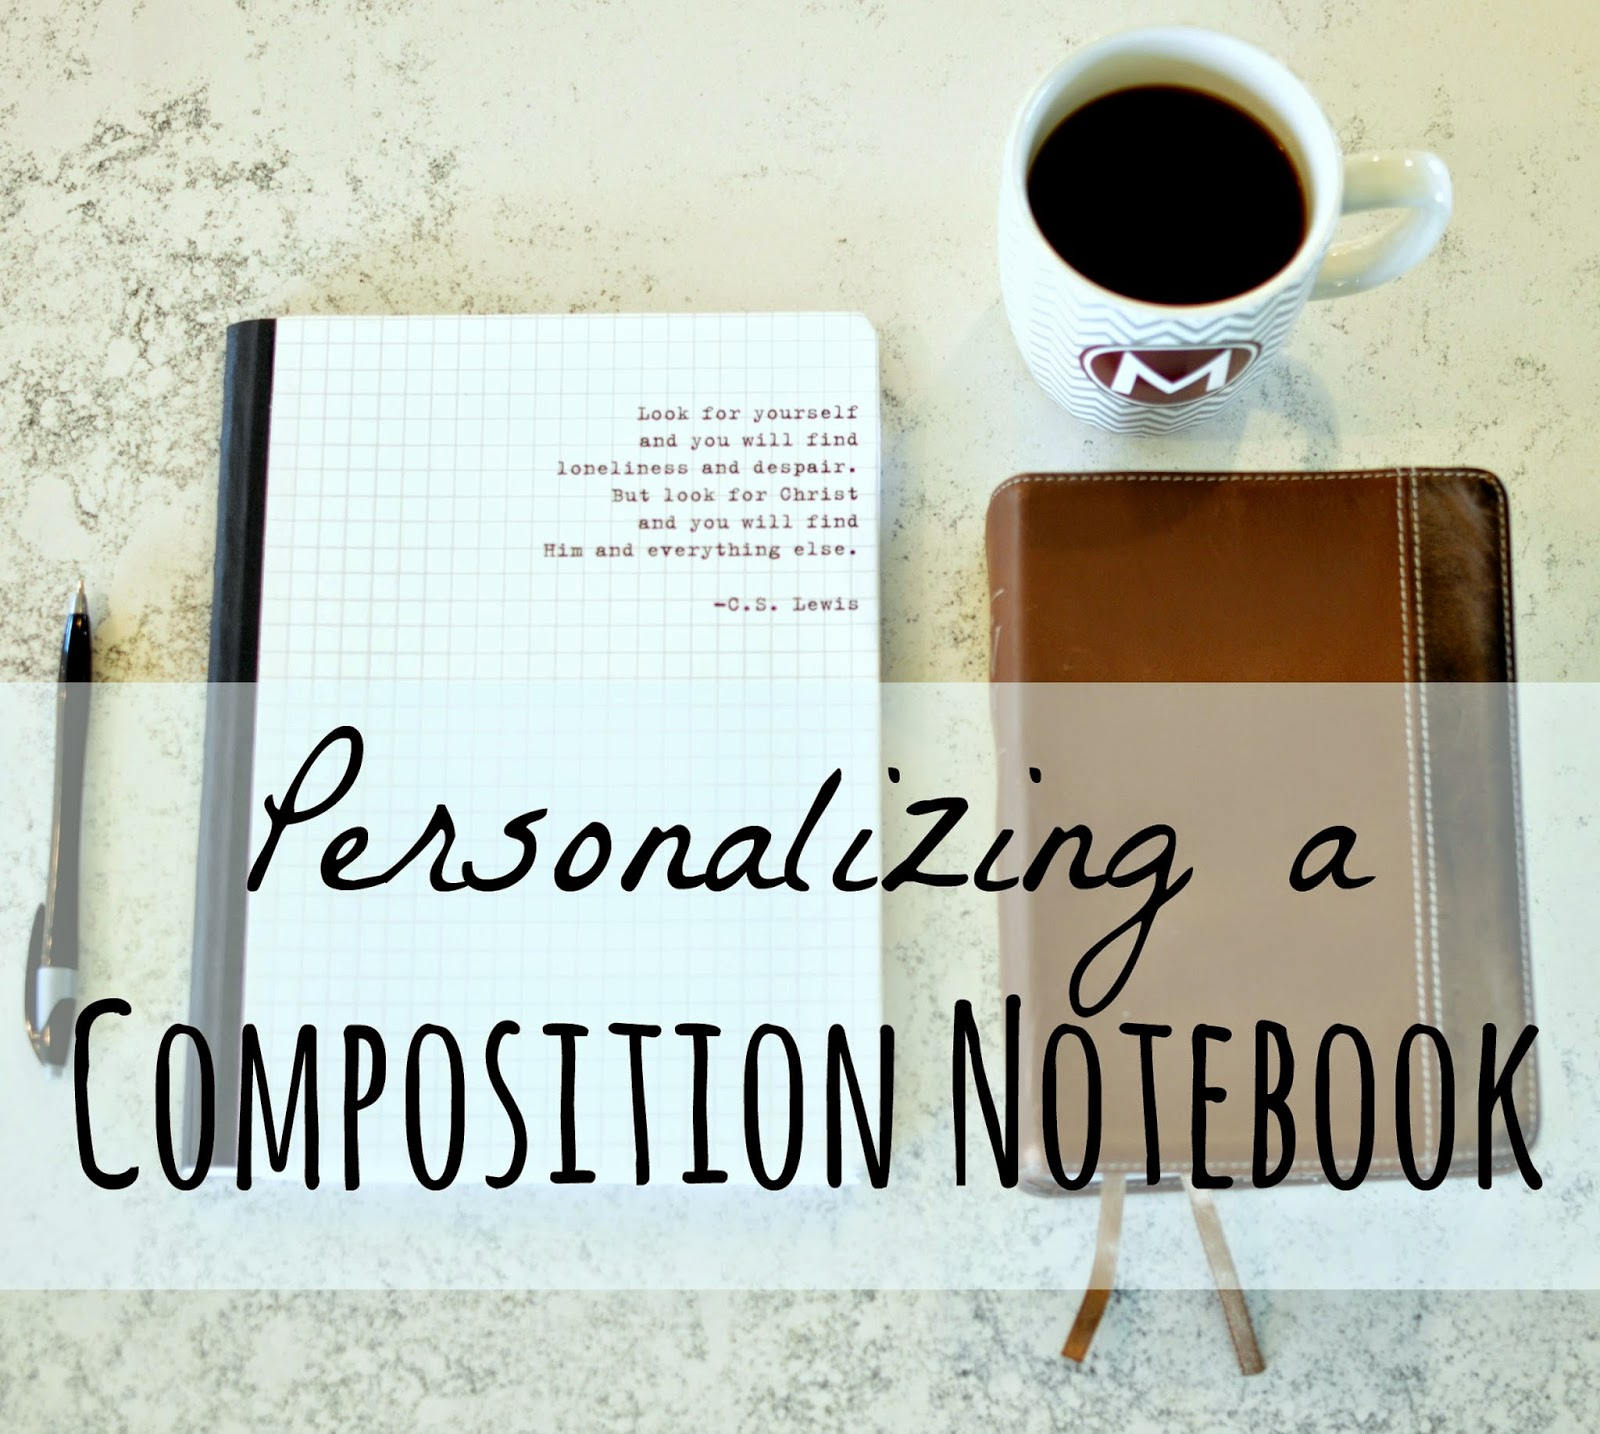 http://anurseandanerd.blogspot.com/2014/06/personalize-your-composition-notebook.html